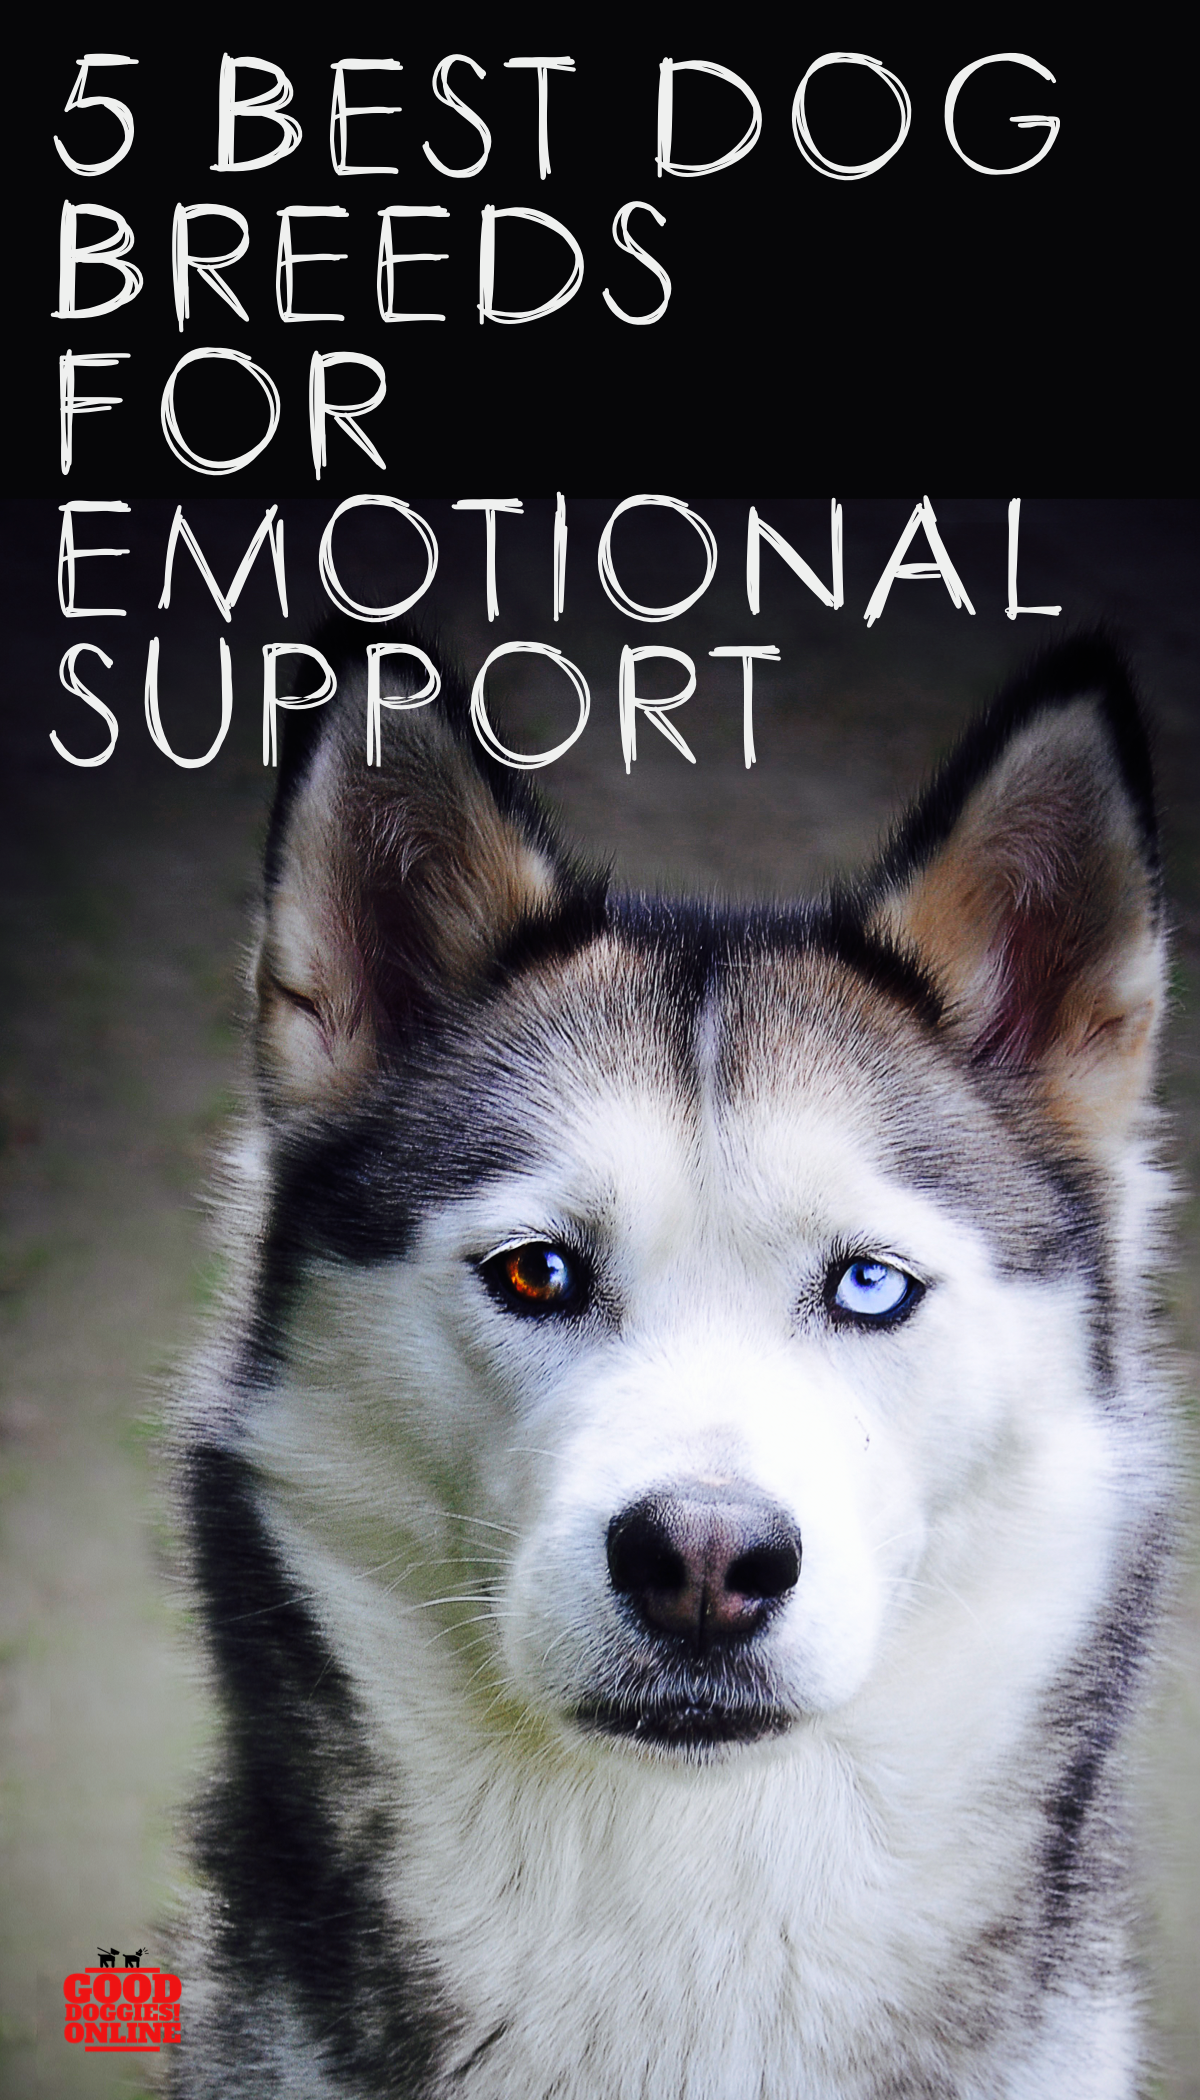 5 Best Dogs for Emotional Support Best dog breeds, Best